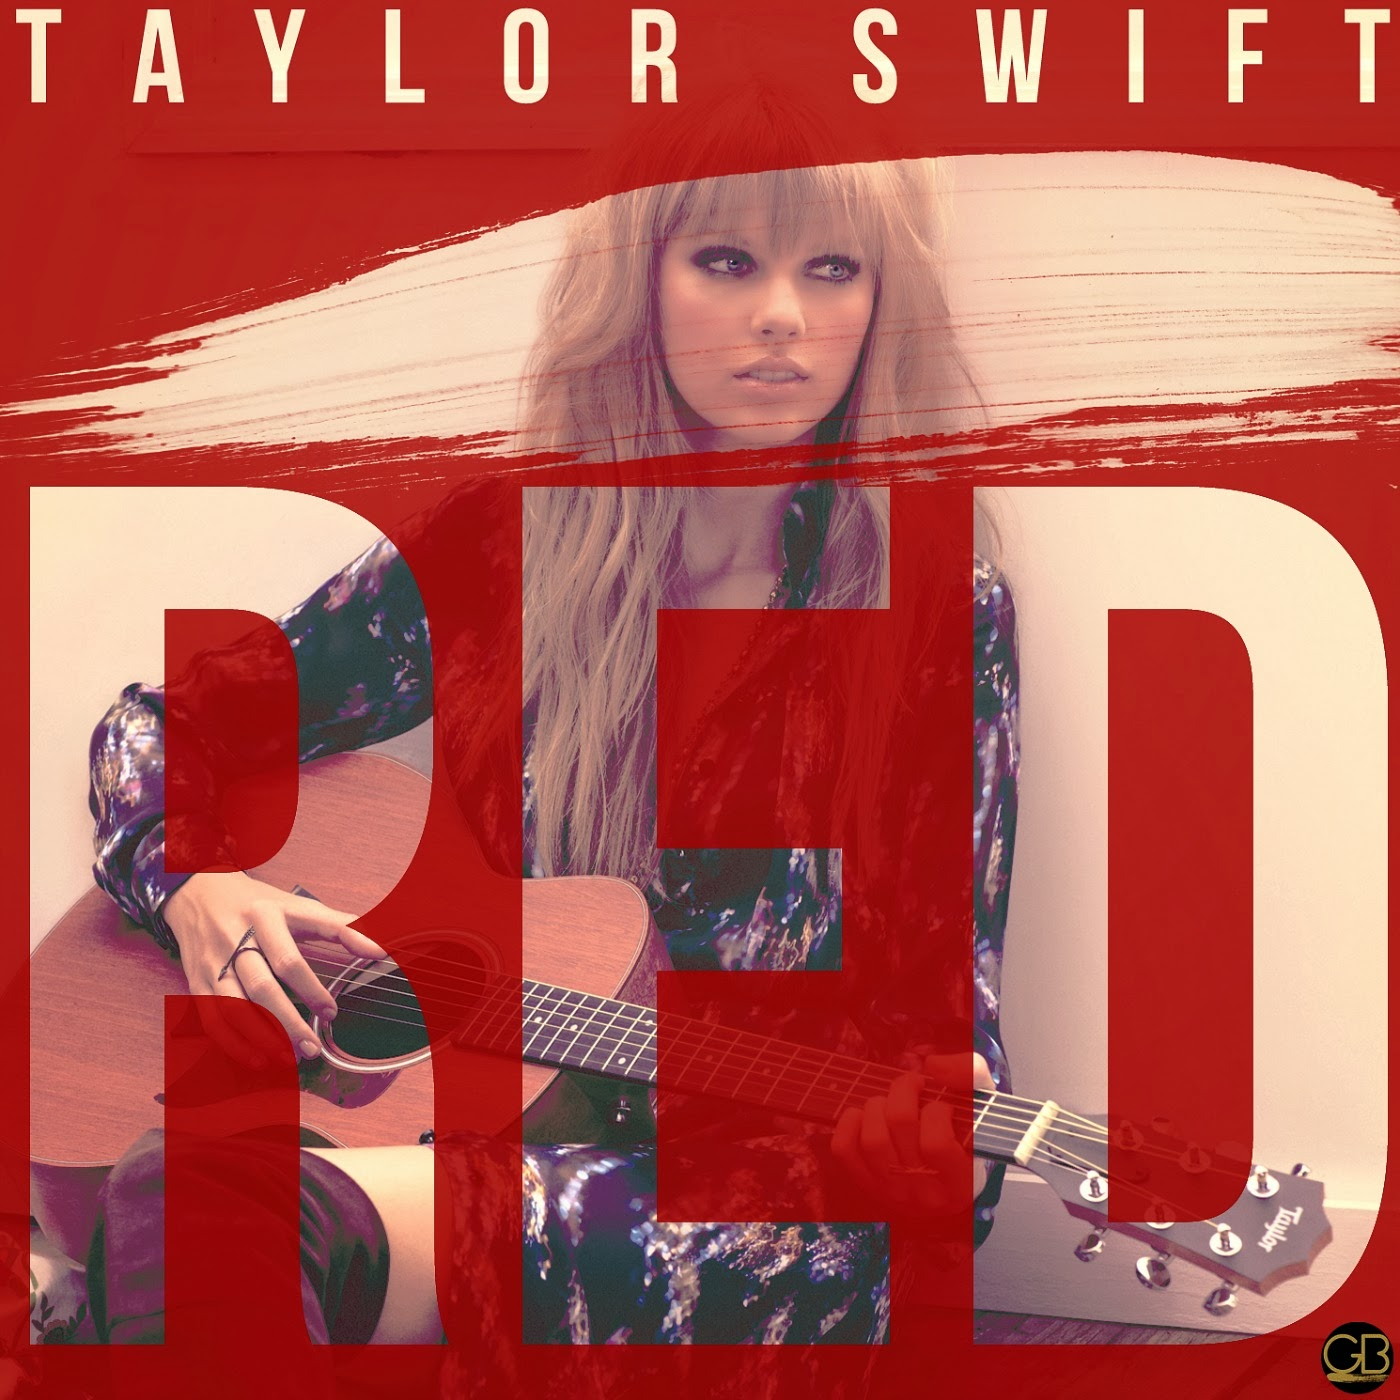 Gif music music video taylor swift animated gif on gifer by.